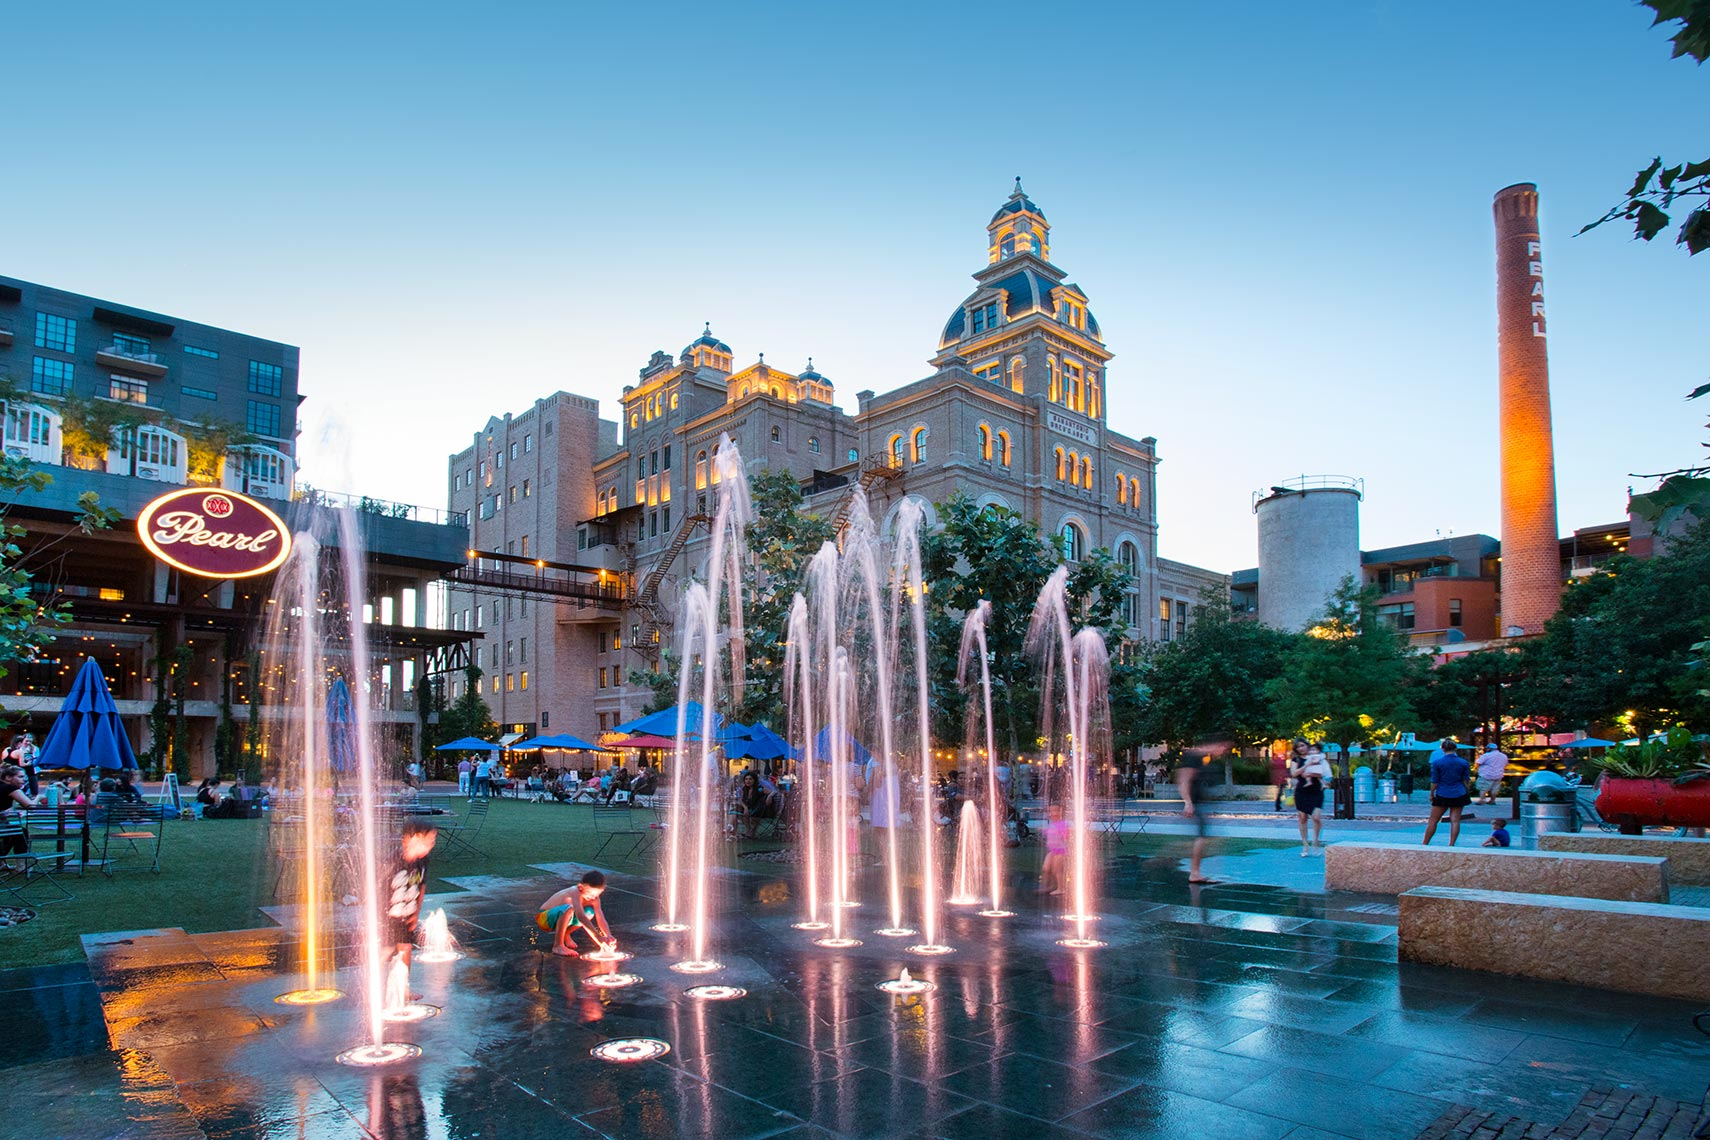 Kids playing in the fountains st the Pearl in San Antonio by Texas Travel Photographer Shannon O